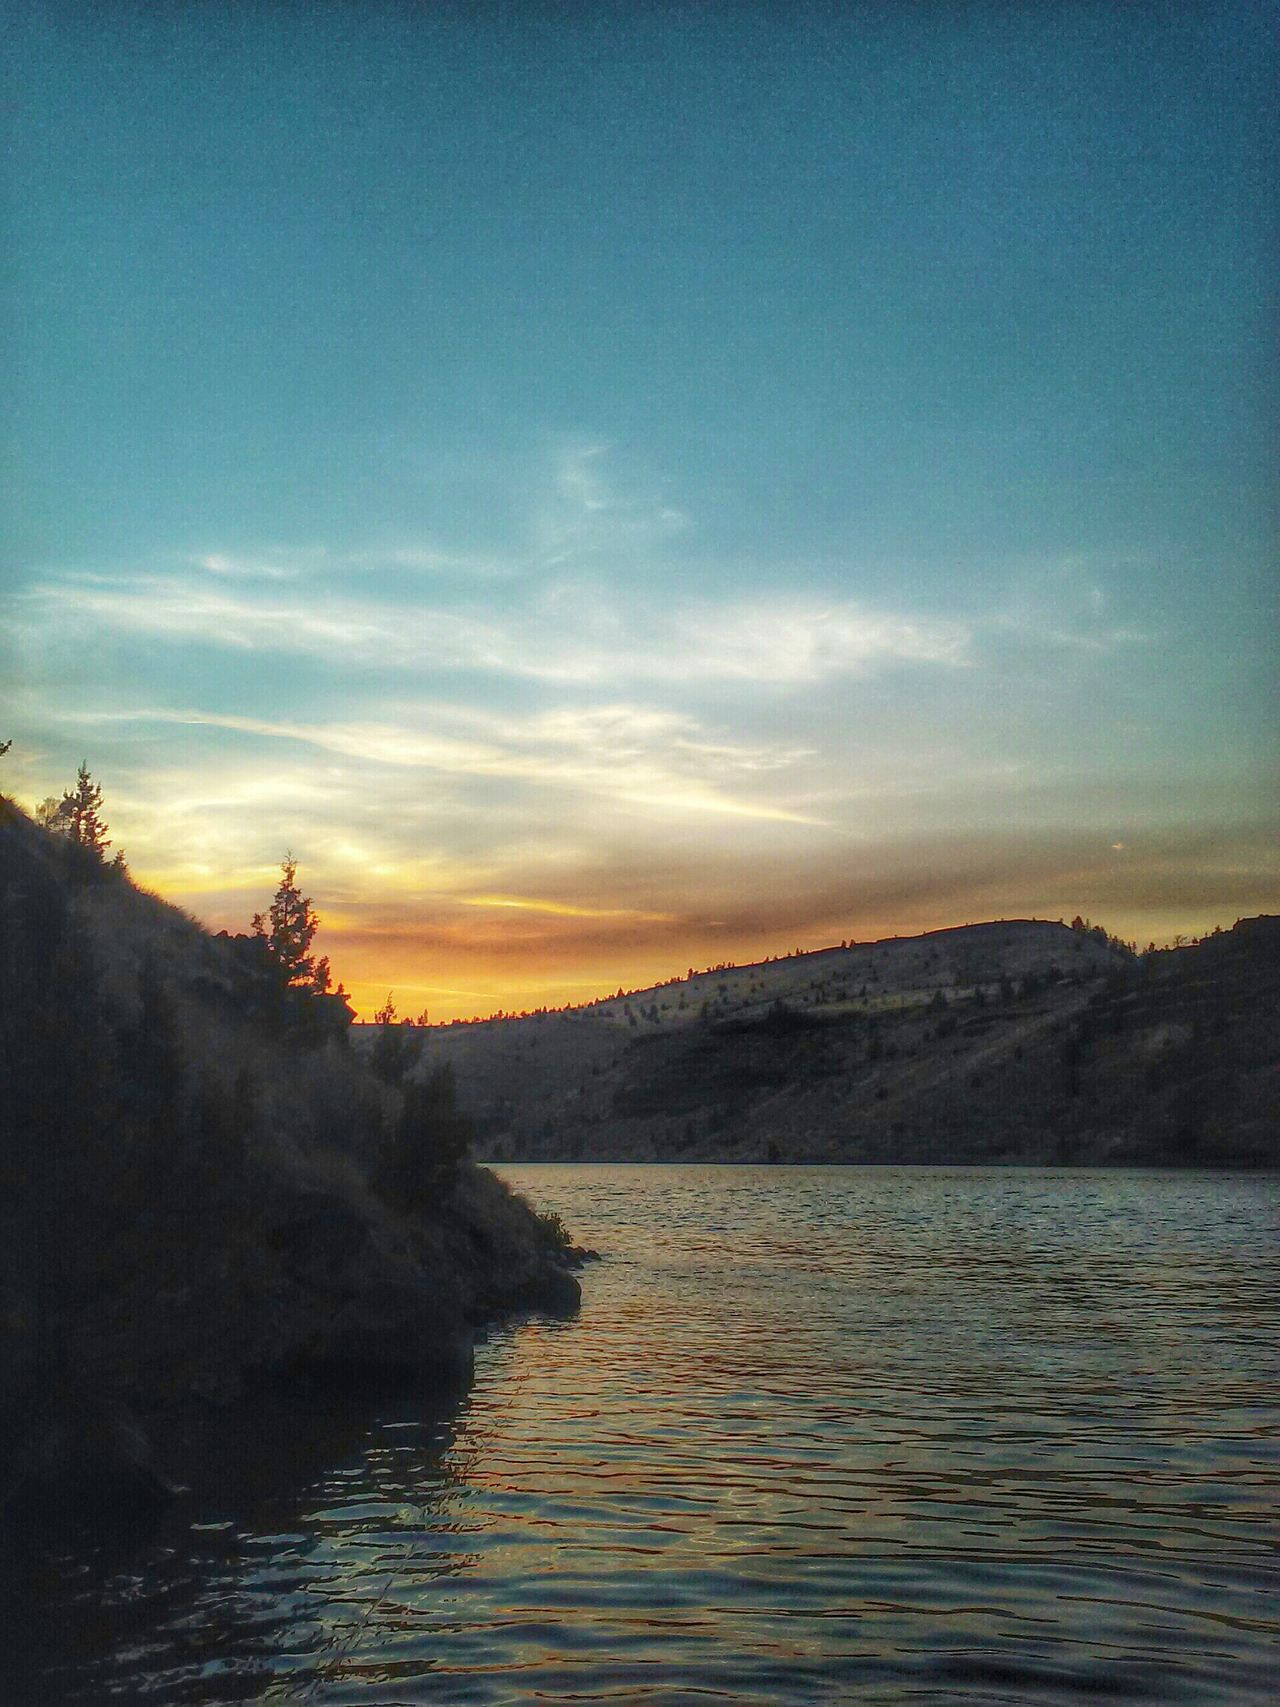 Central Oregon Water Nature Lake Peaceful Sky Sunset Outdoors